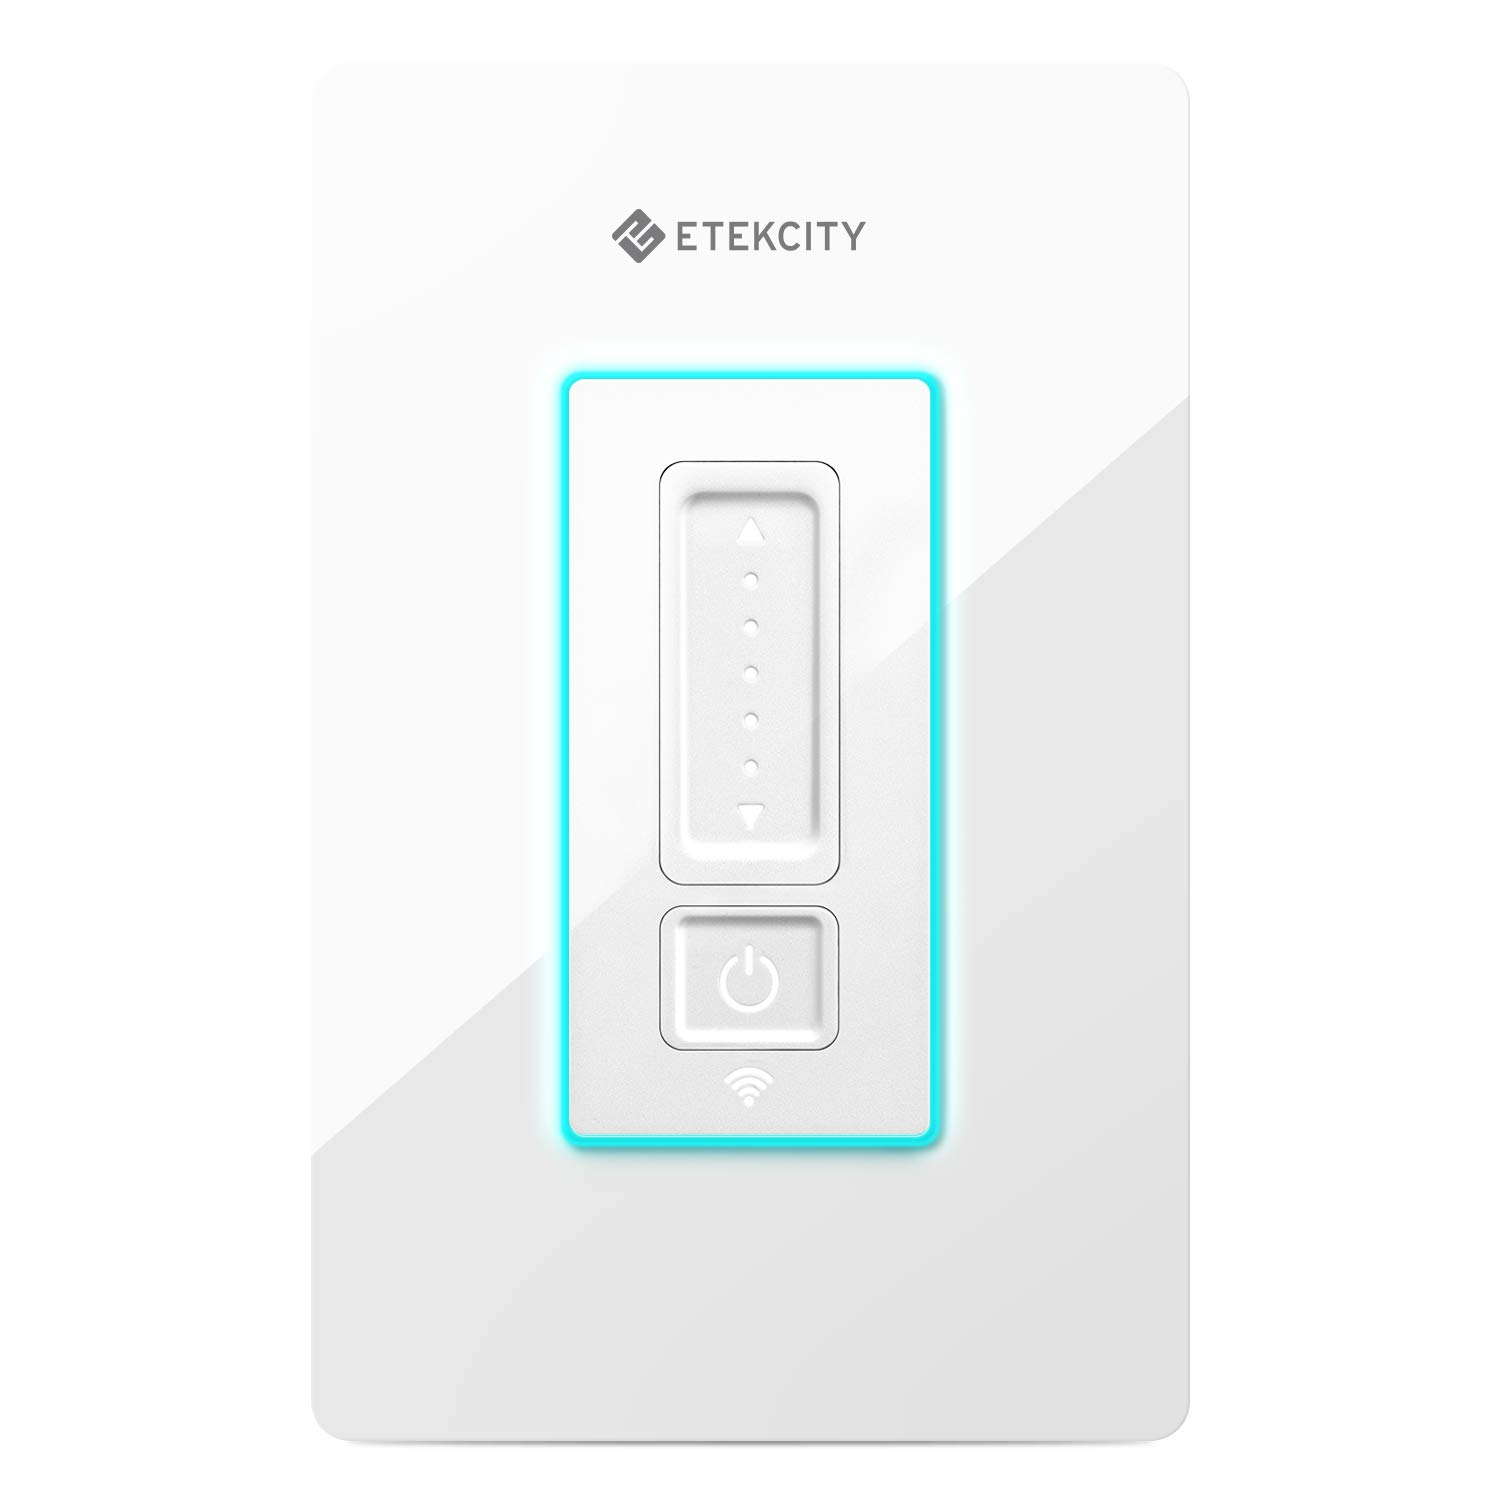 Smart Dimmer Switch by Etekcity, WiFi Light Switch Compatible with LED Lights, Works with Alexa and Google Home, Neutral Wire Required, FCC/ETL Listed, 2-Year Warranty